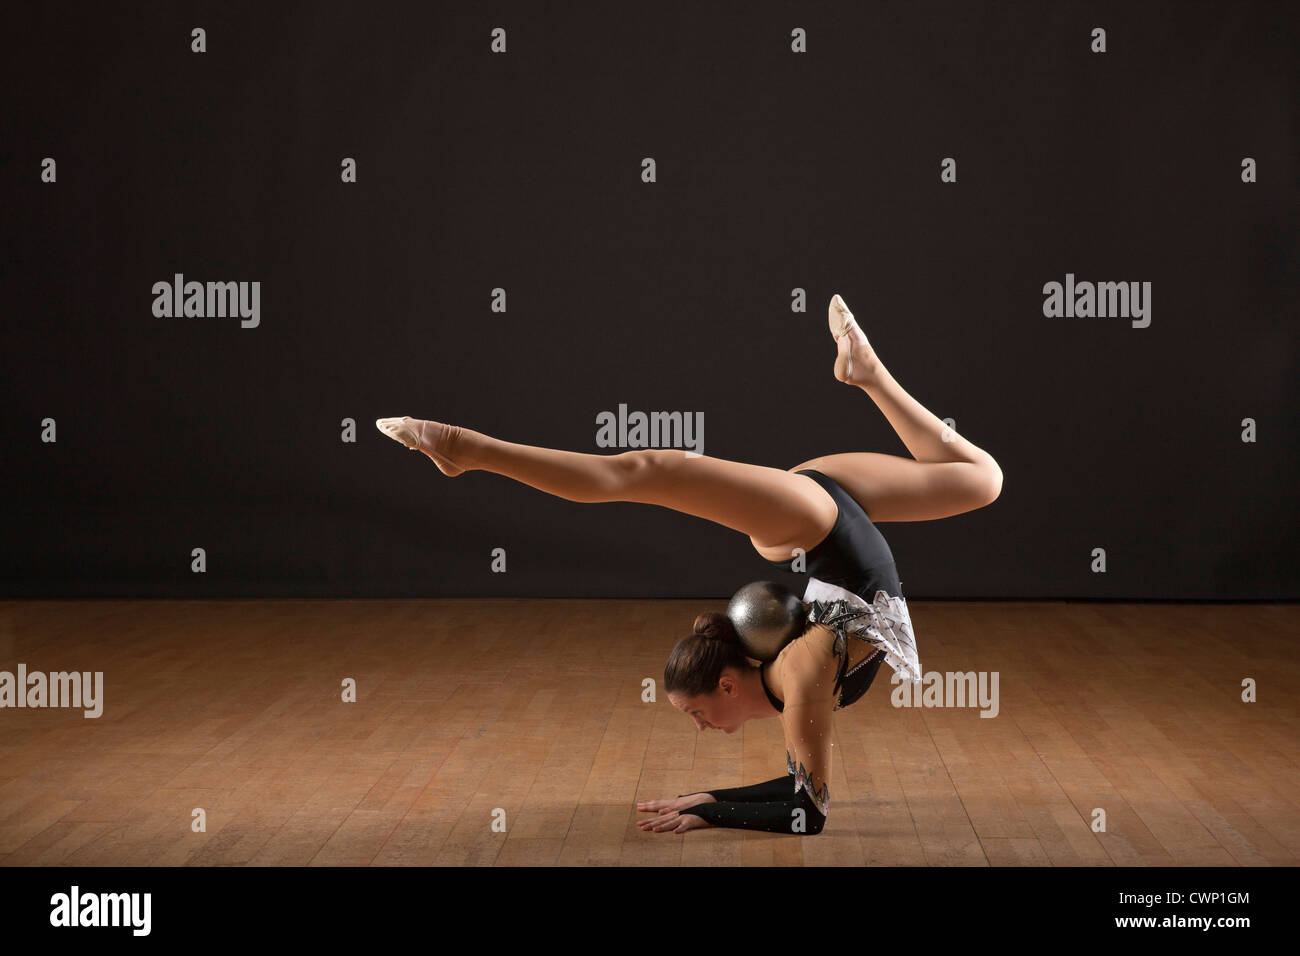 Gymnast bending backwards, balancing ball with head - Stock Image